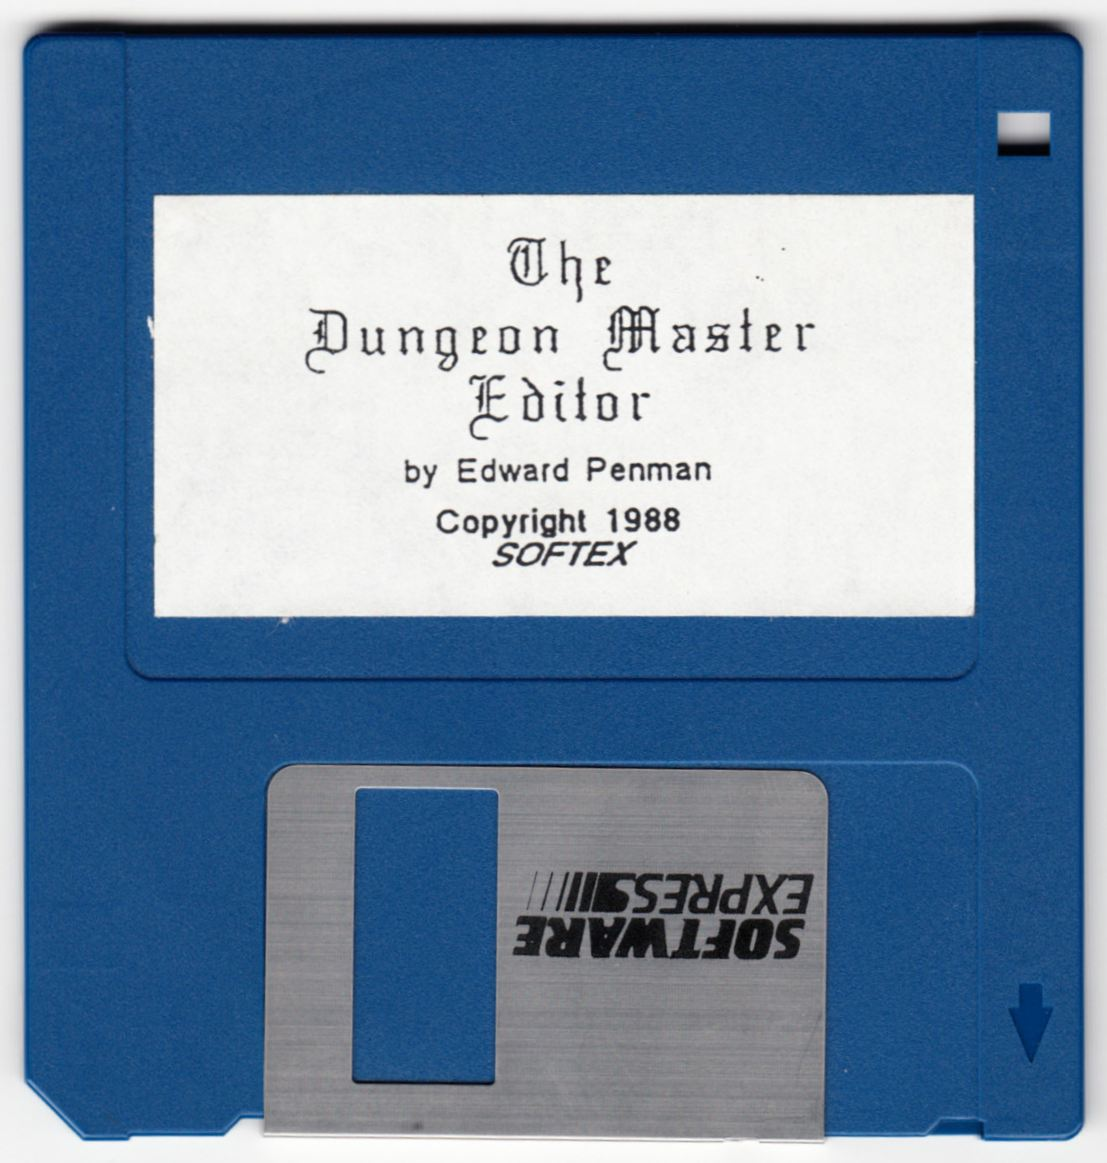 Tool - The Dungeon Master Editor - UK - Amiga - Disk - Front - Scan